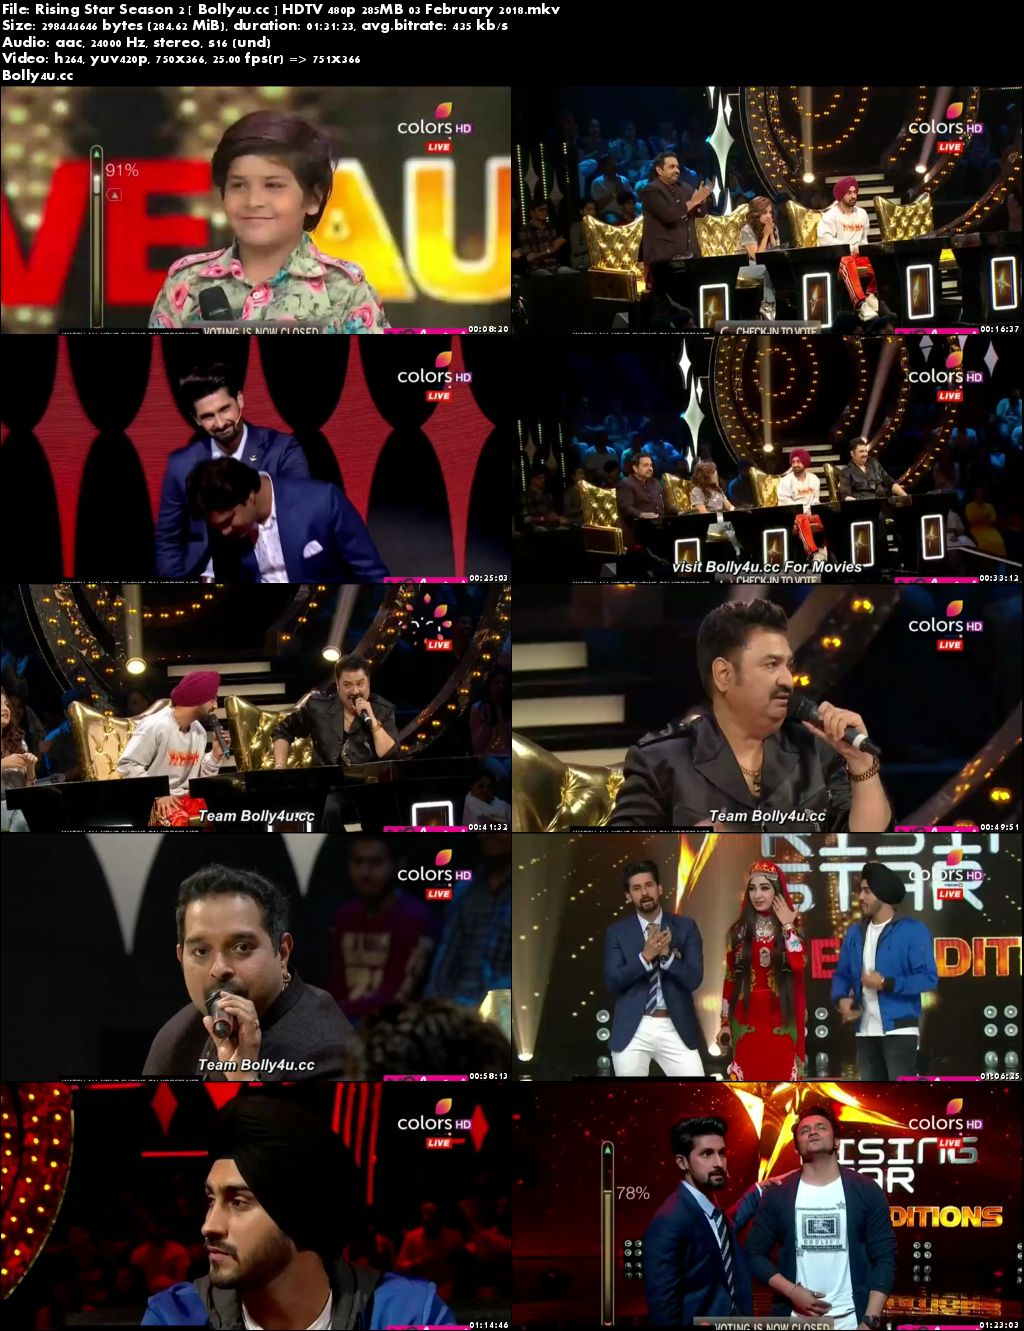 Rising Star Season 2 HDTV 480p 280MB 03 February 2018 Download